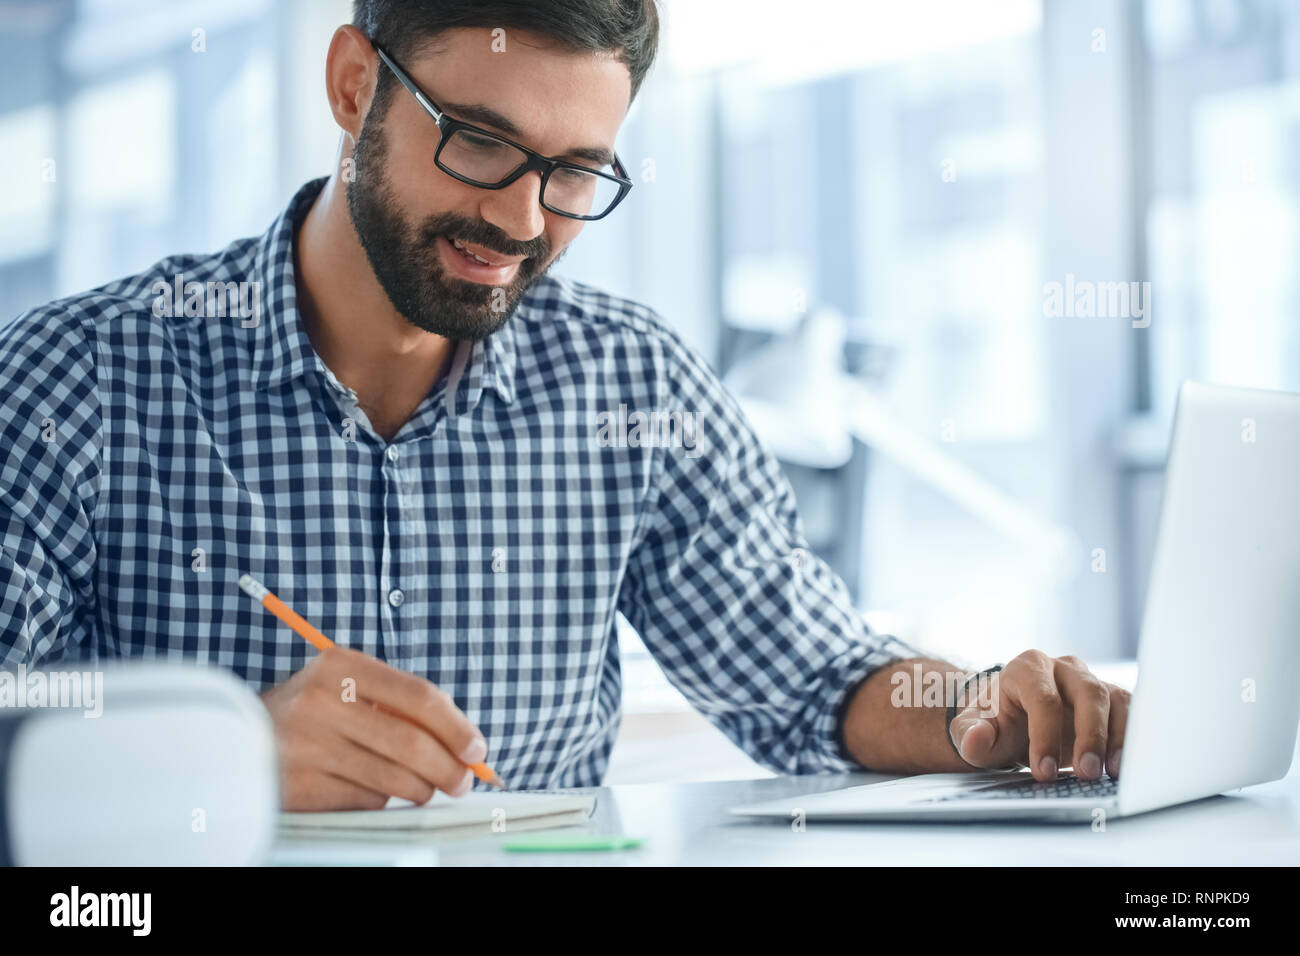 Bussiness person work in the office career using laptop - Stock Image